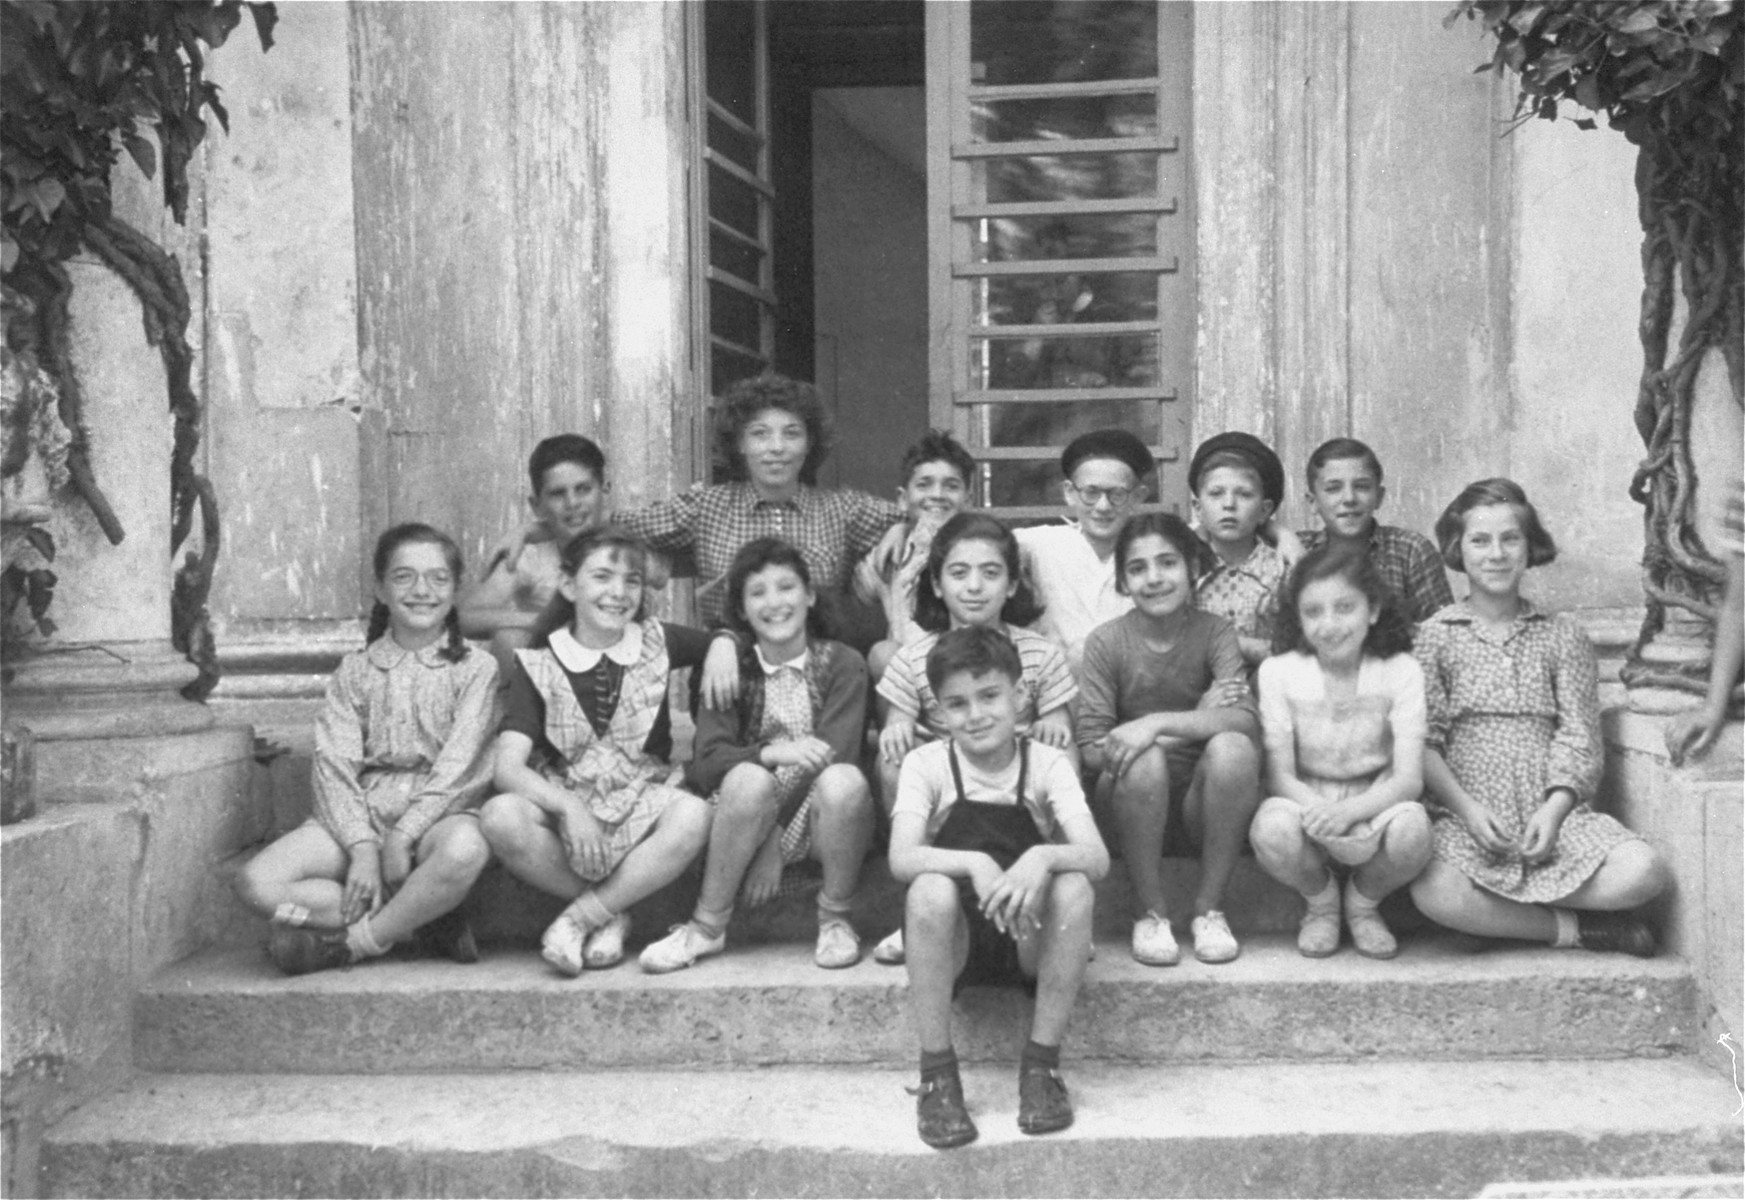 Group portrait of children at the OSE (Oeuvre de Secours aux Enfants) children's home at the Château de Vaucelles in Taverny.   Felice Zimmern is seated in the first row, far left and her sister Beate is seated next to her (second from the left). Sitting next to them are Francine and Edmee.  At the end of the girls' row is Lise Behar. Seated in the back is the counselor Helene Ekayser.  The boy second from the right is  Leon Bretmel.